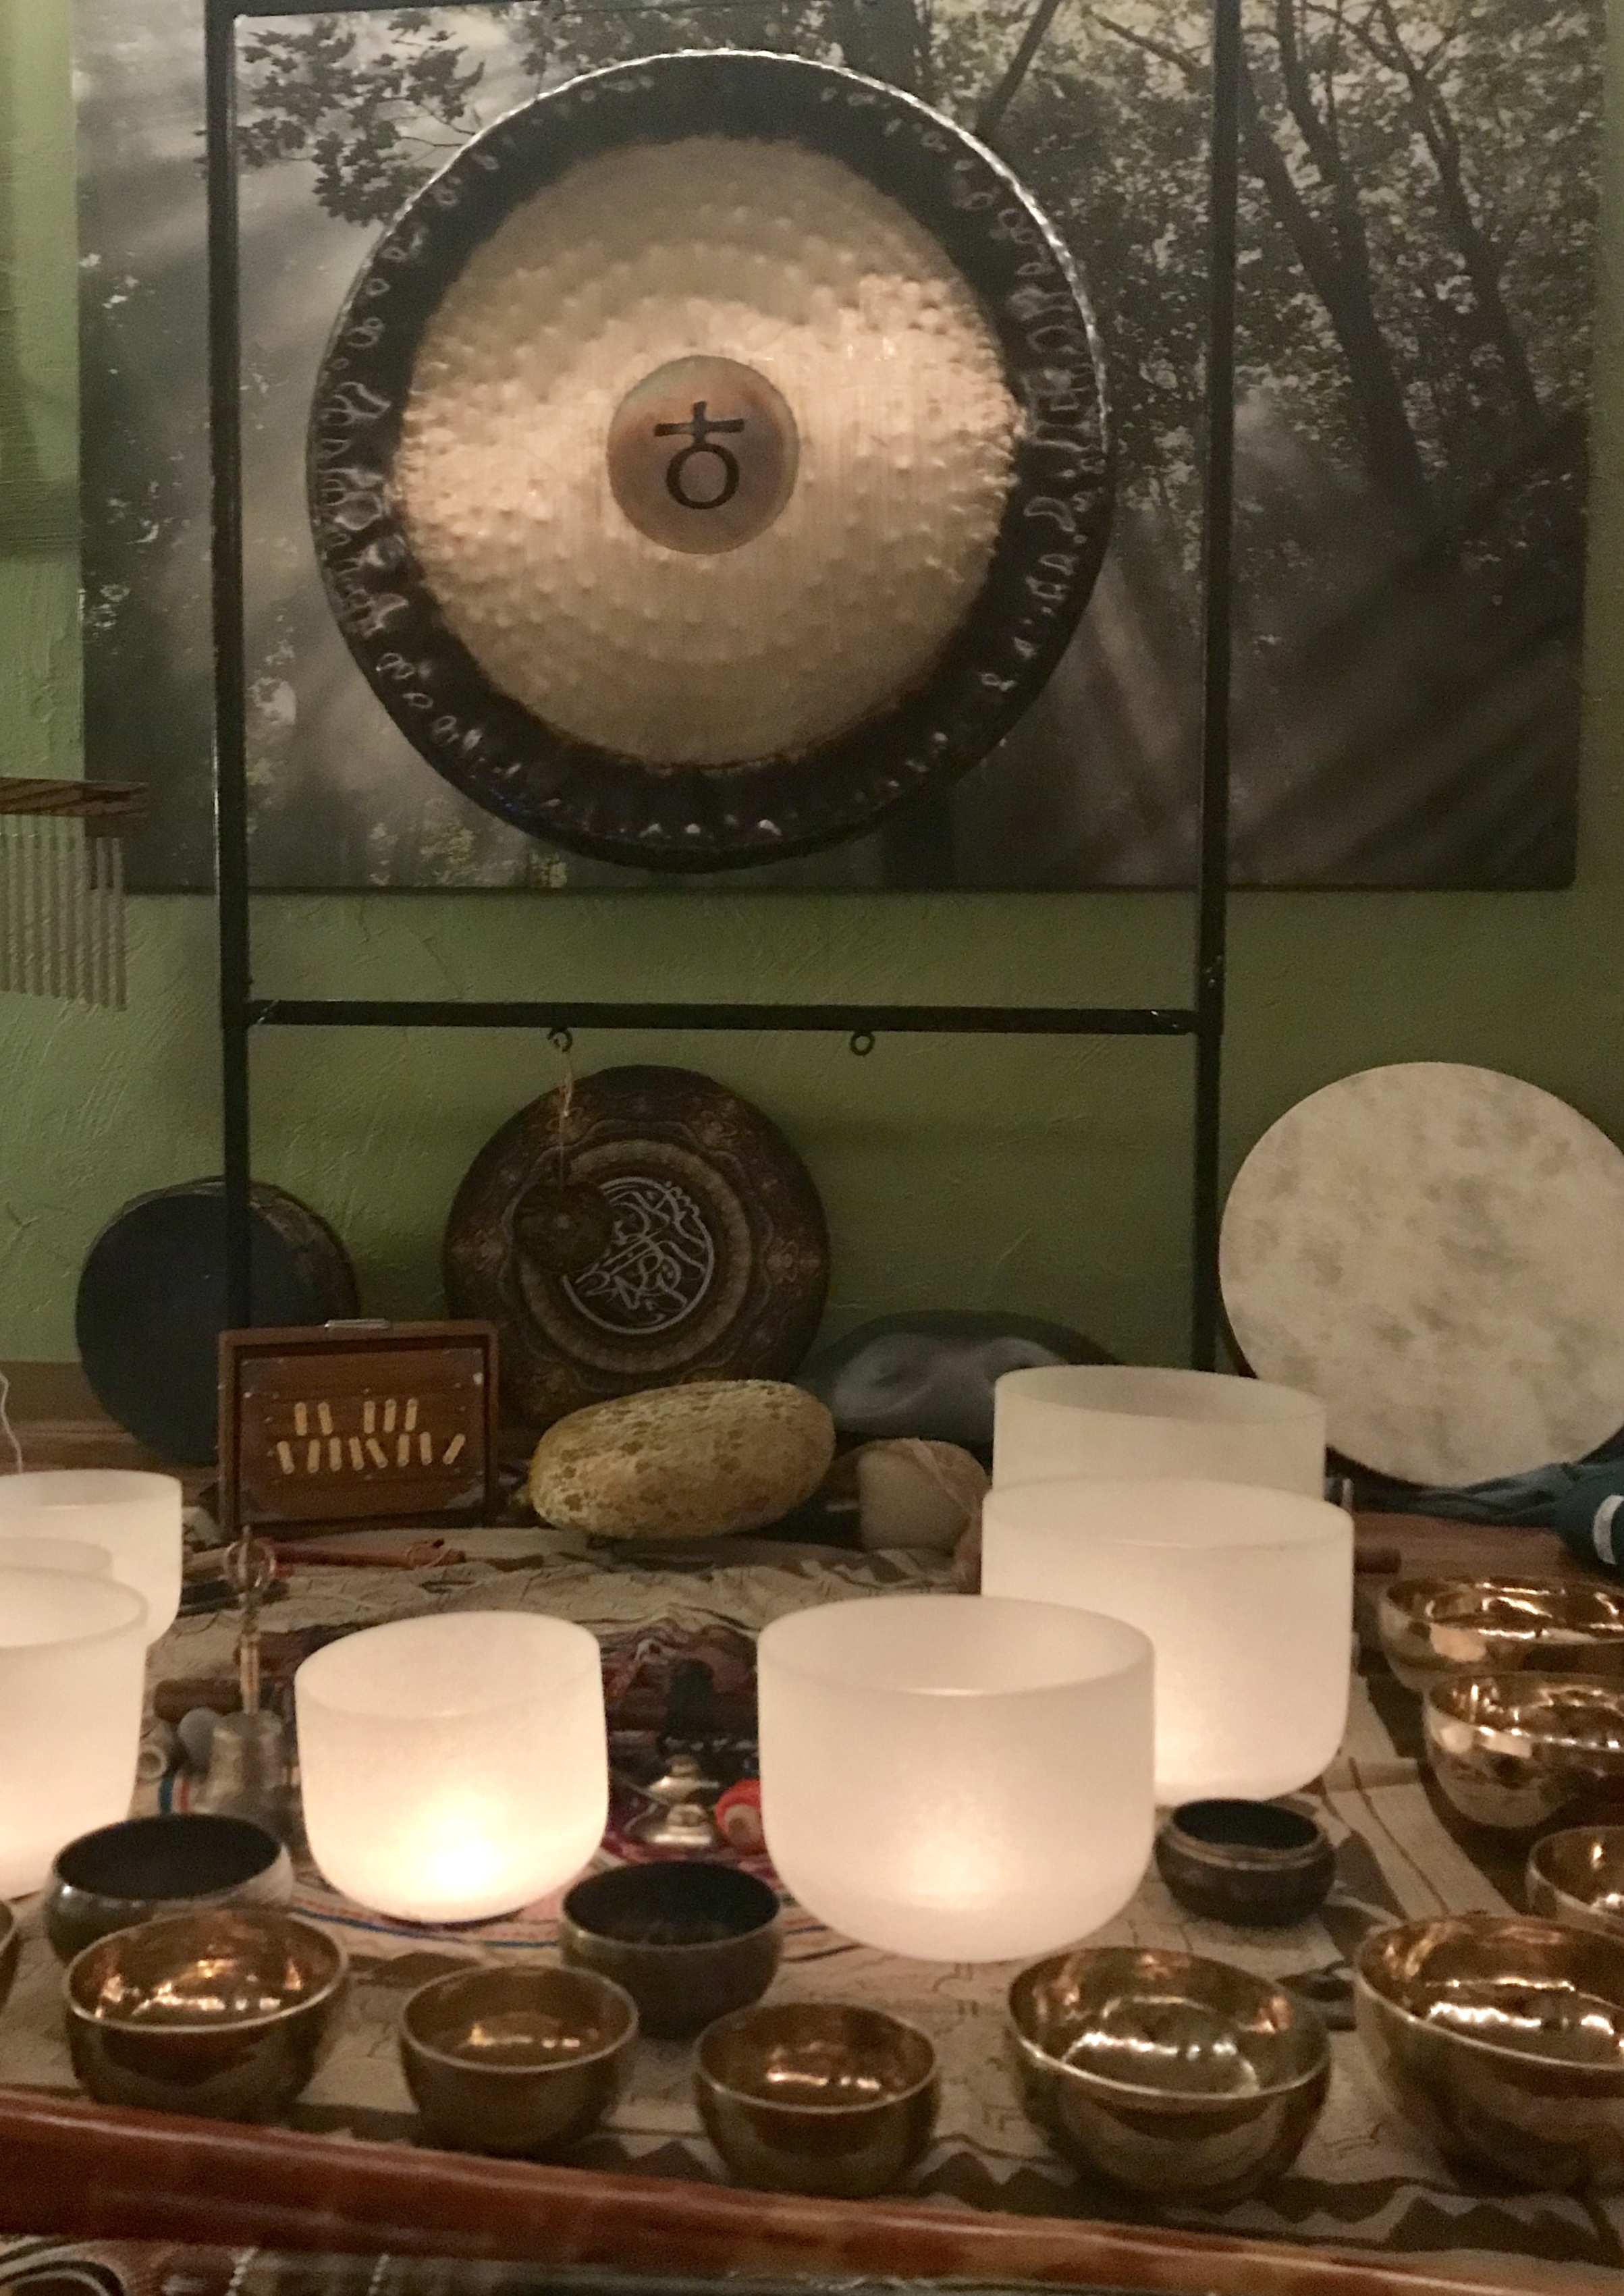 Sound bowls + gong